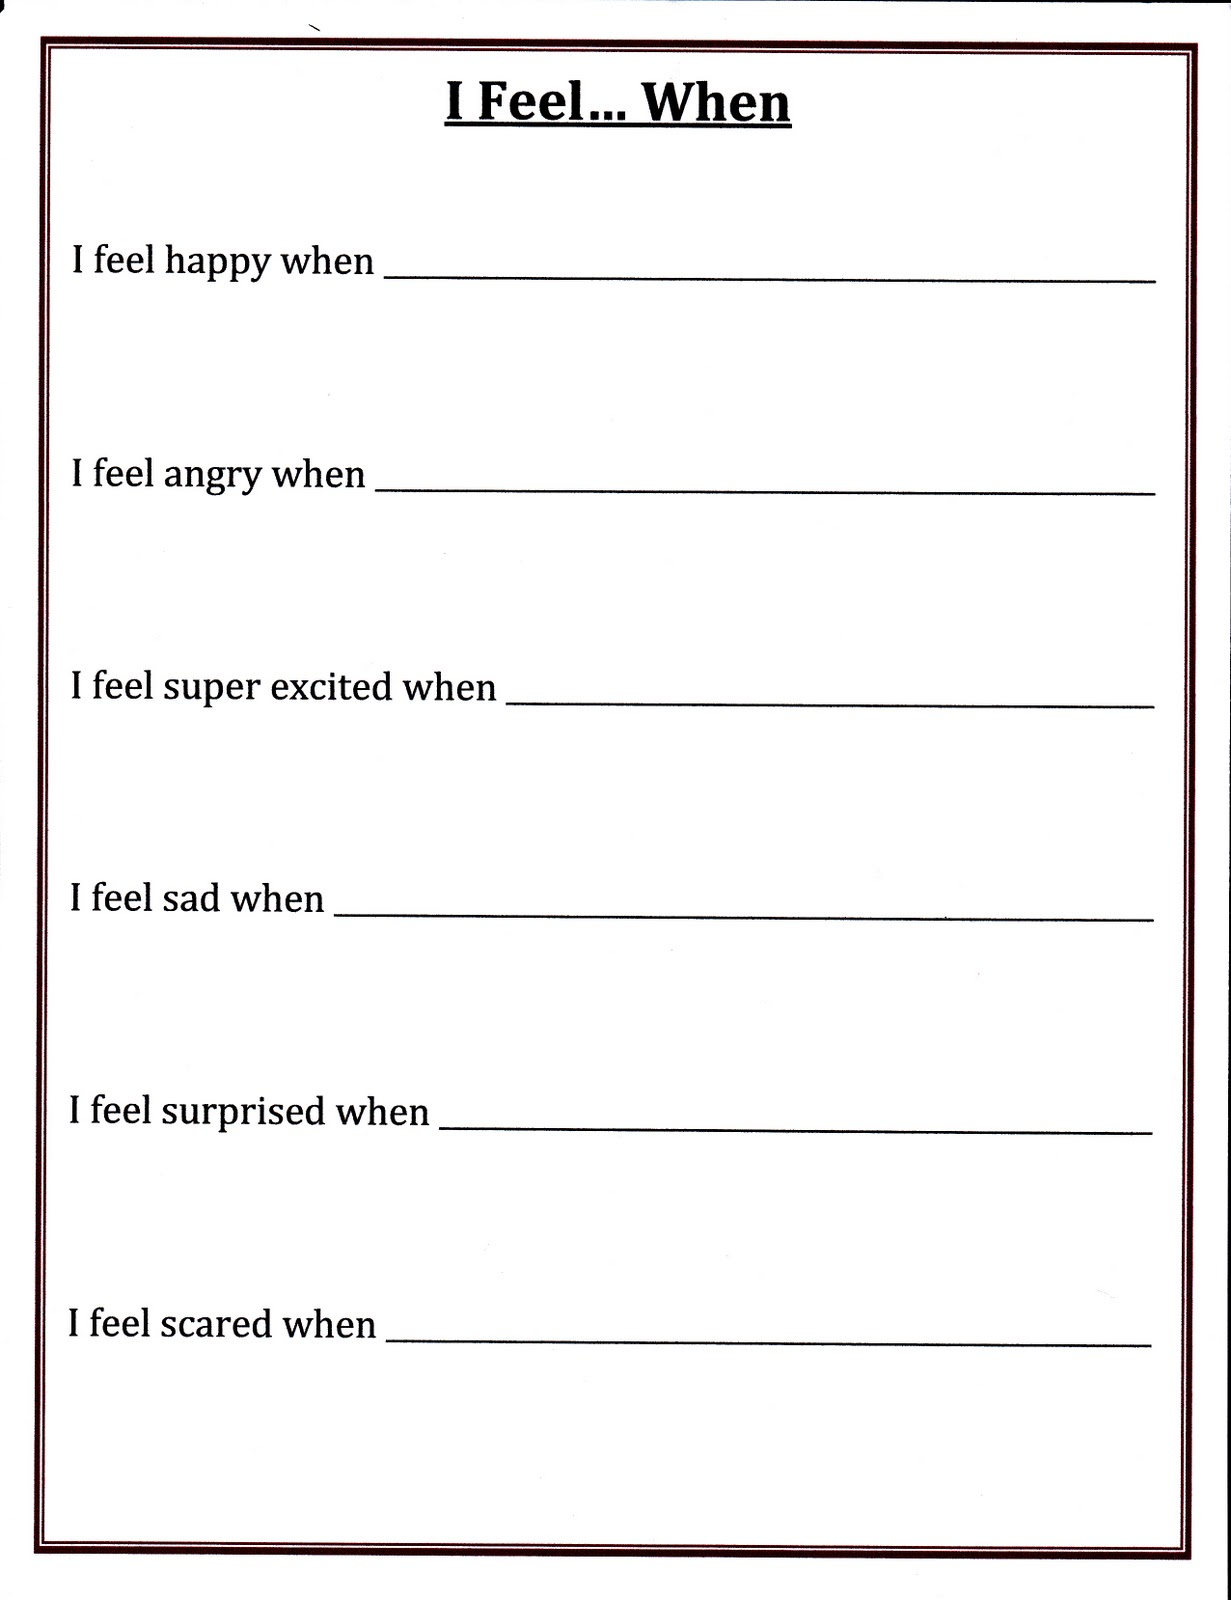 Printables Bullying Worksheets Middle School bullying worksheets middle school abitlikethis printable activity 5th grade writing worksheets